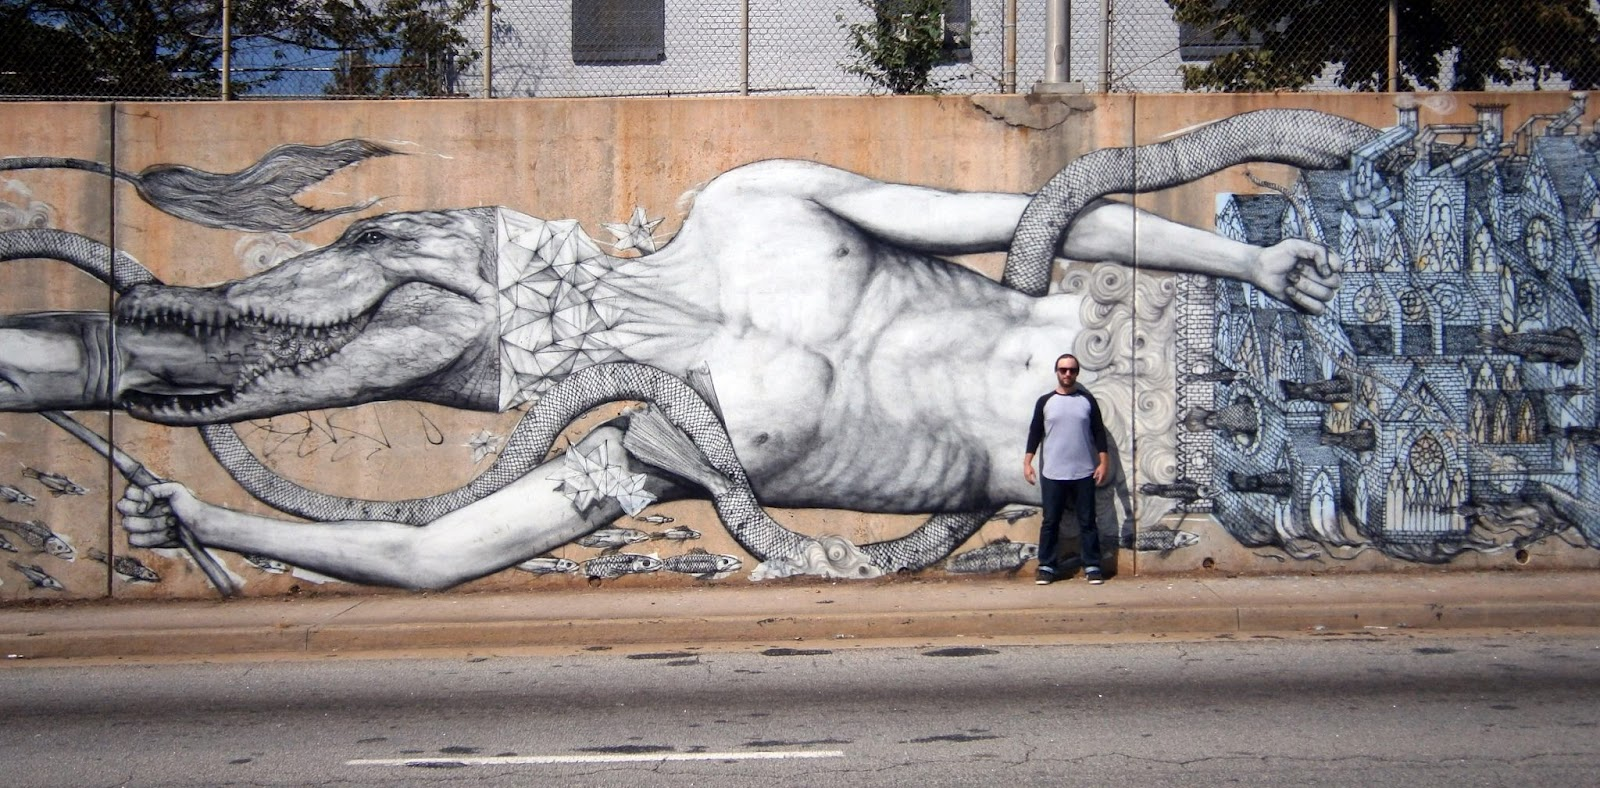 Roti new mural in atlanta usa streetartnews streetartnews for Atlanta mural artist